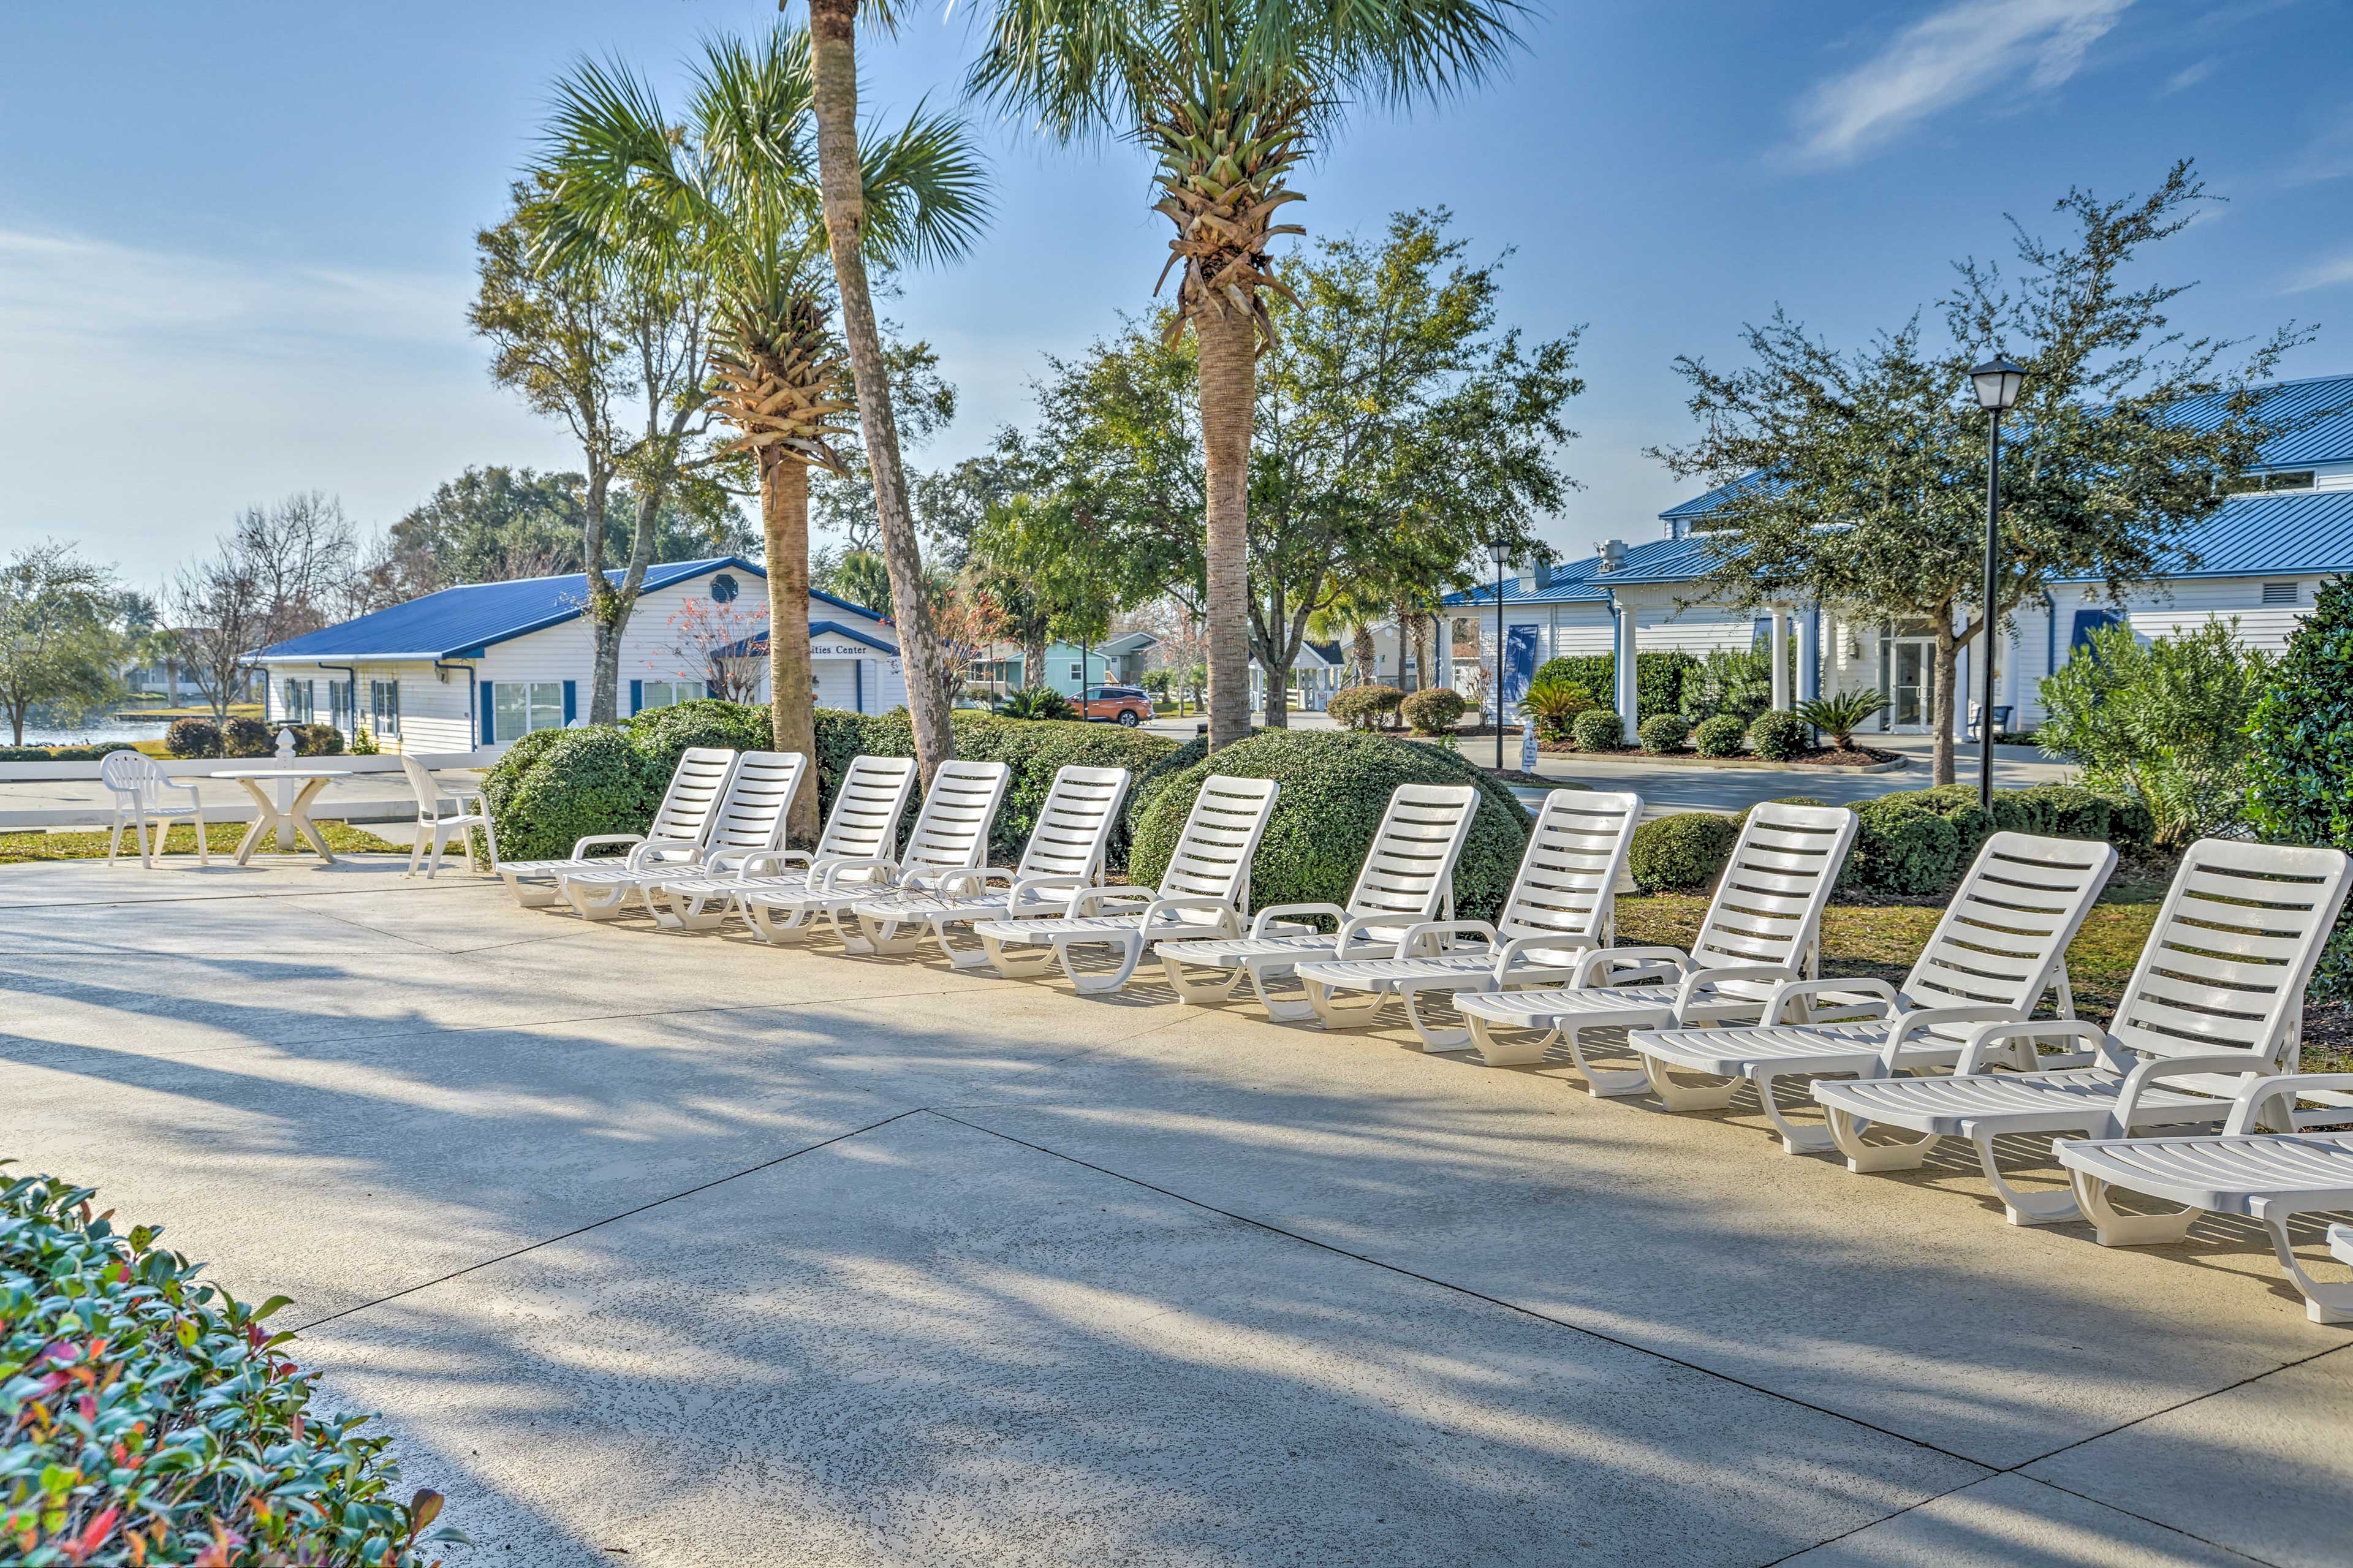 Bask in the sunshine on the lounge chairs.